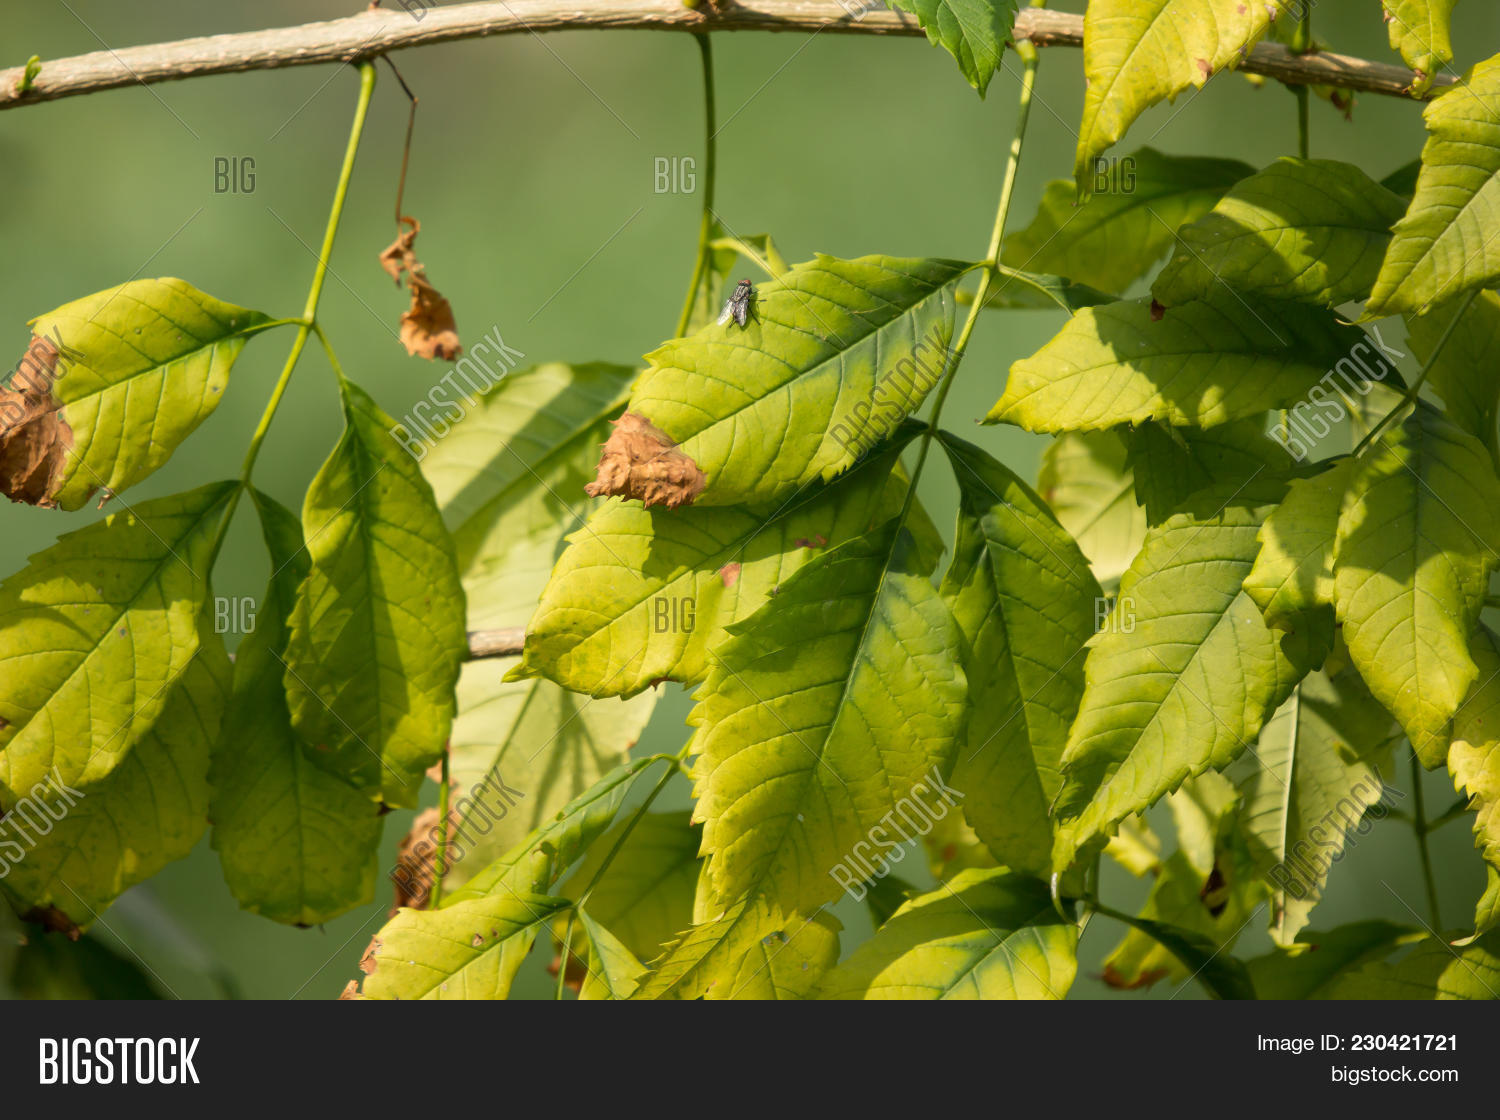 Close Green Leaf Image Photo Free Trial Bigstock